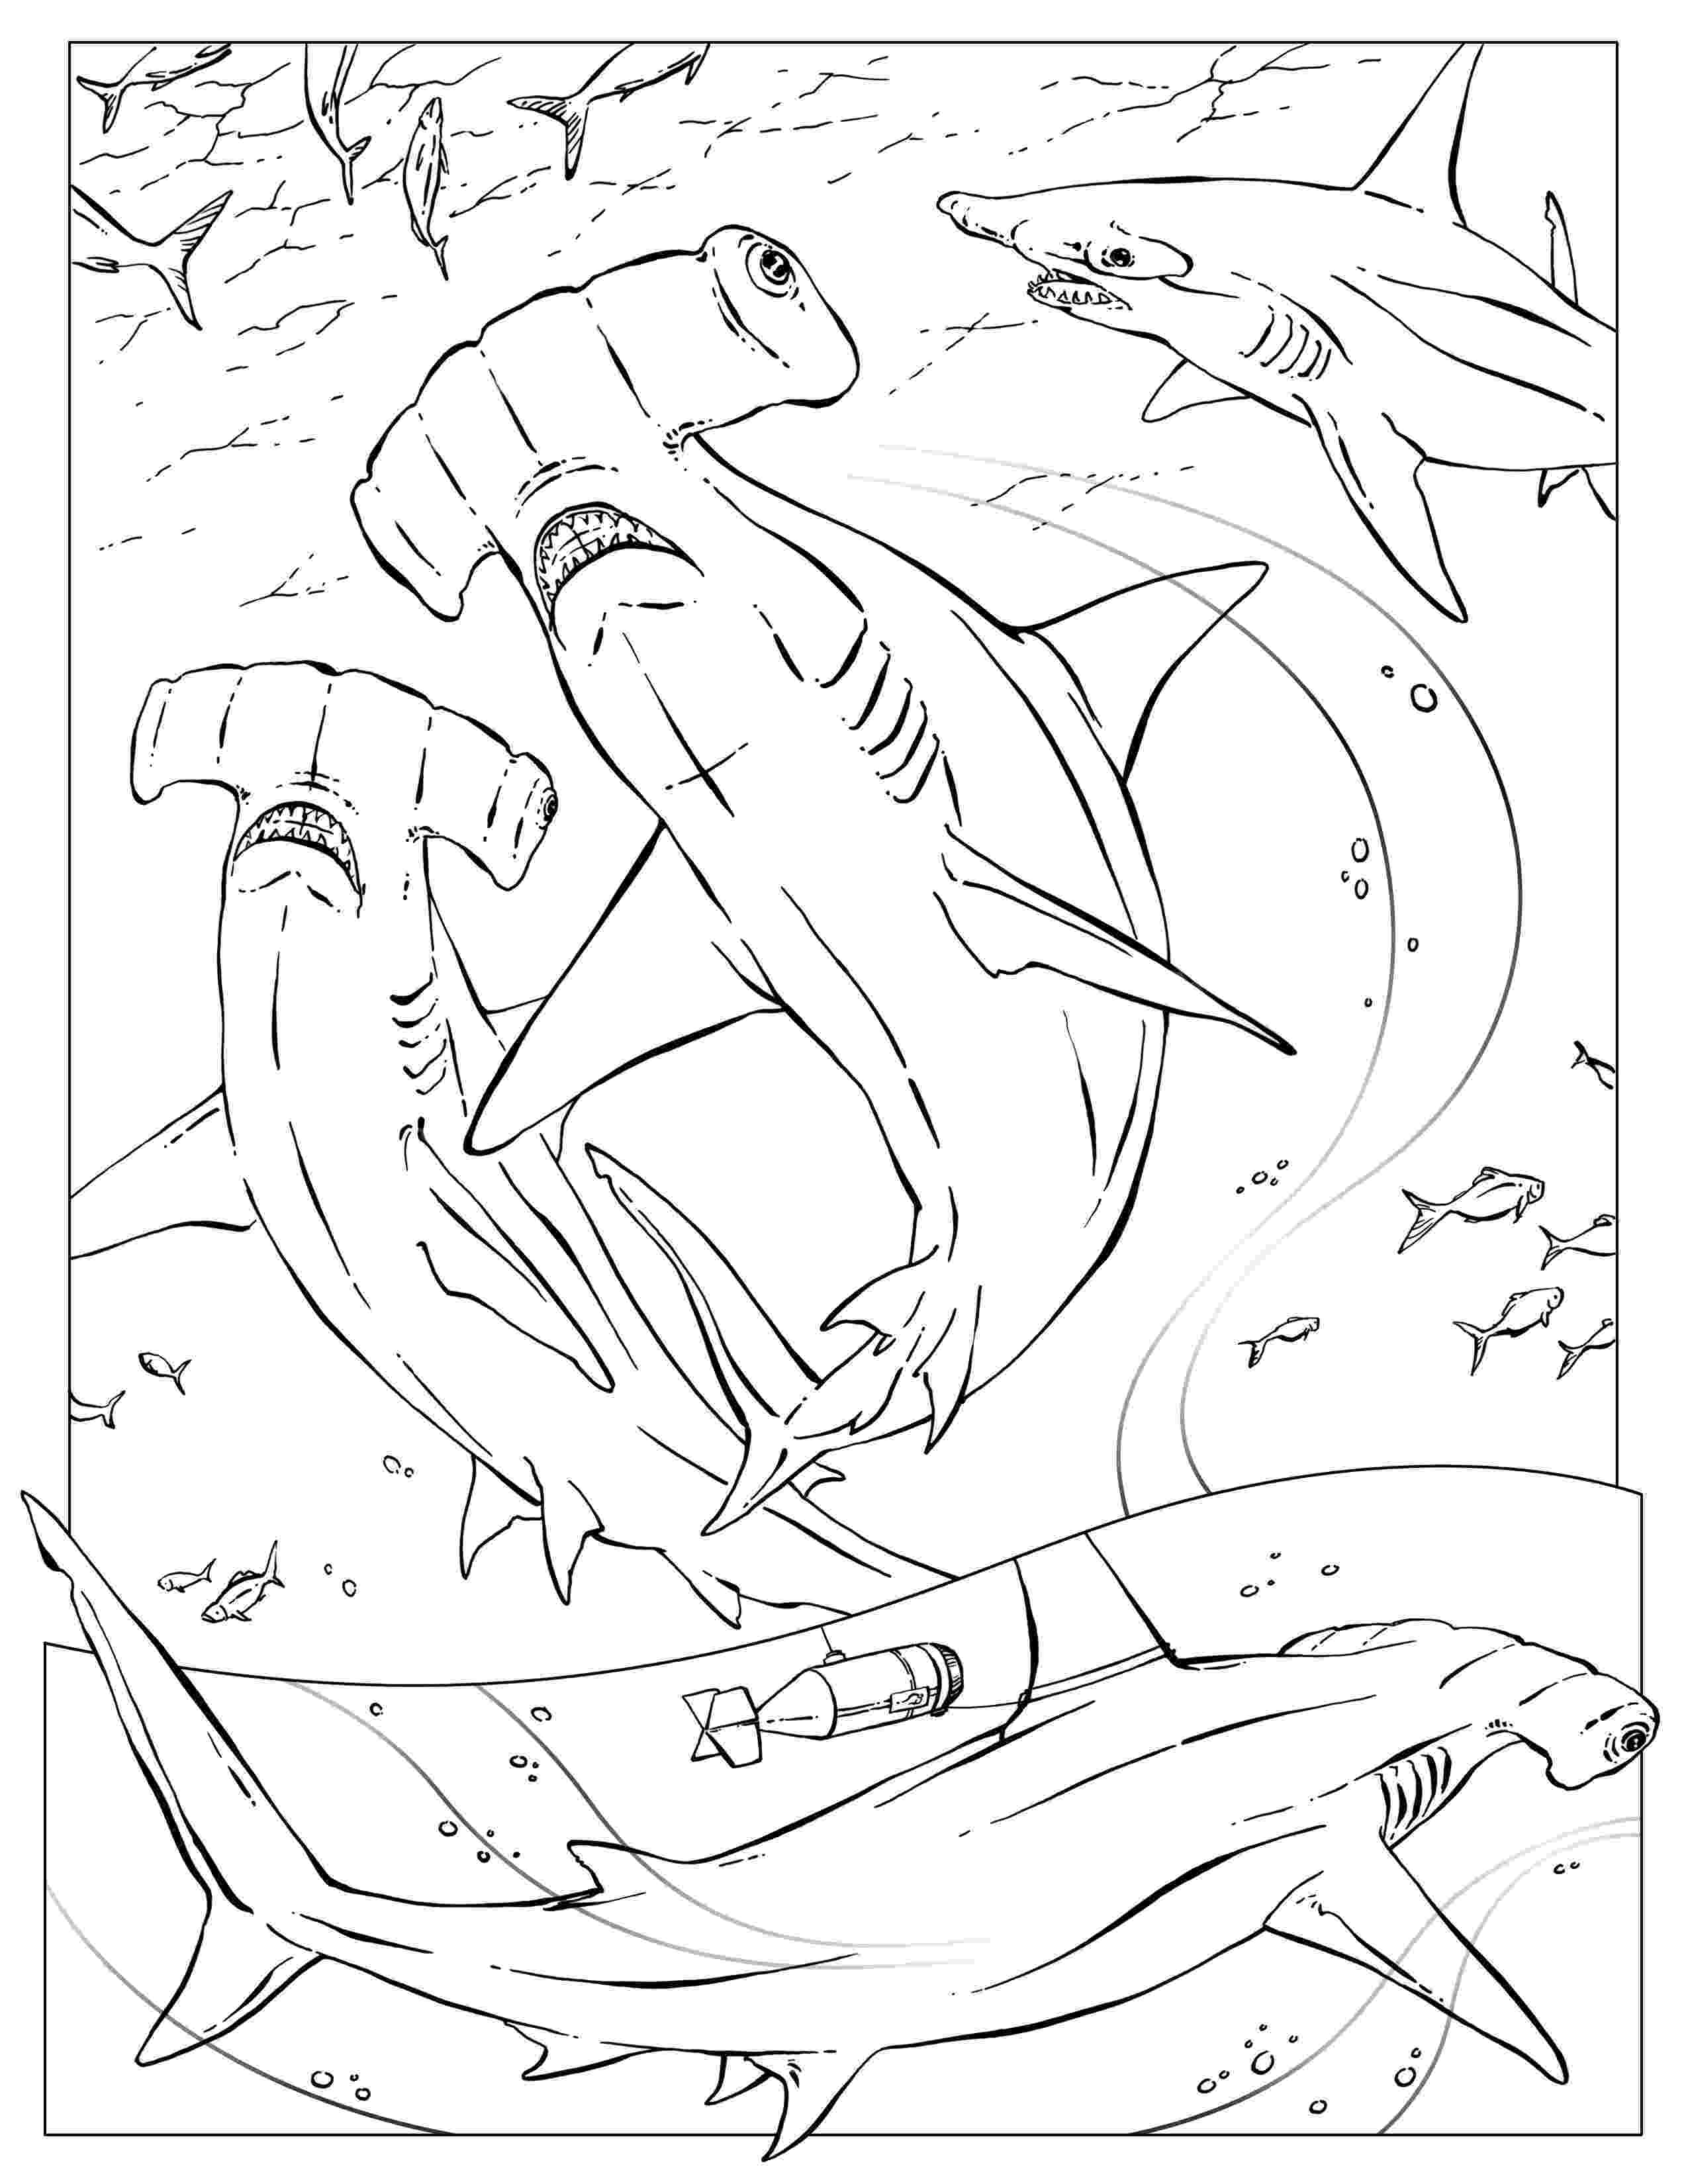 hammerhead shark coloring pages coloring pages wildlife research conservation hammerhead shark pages coloring